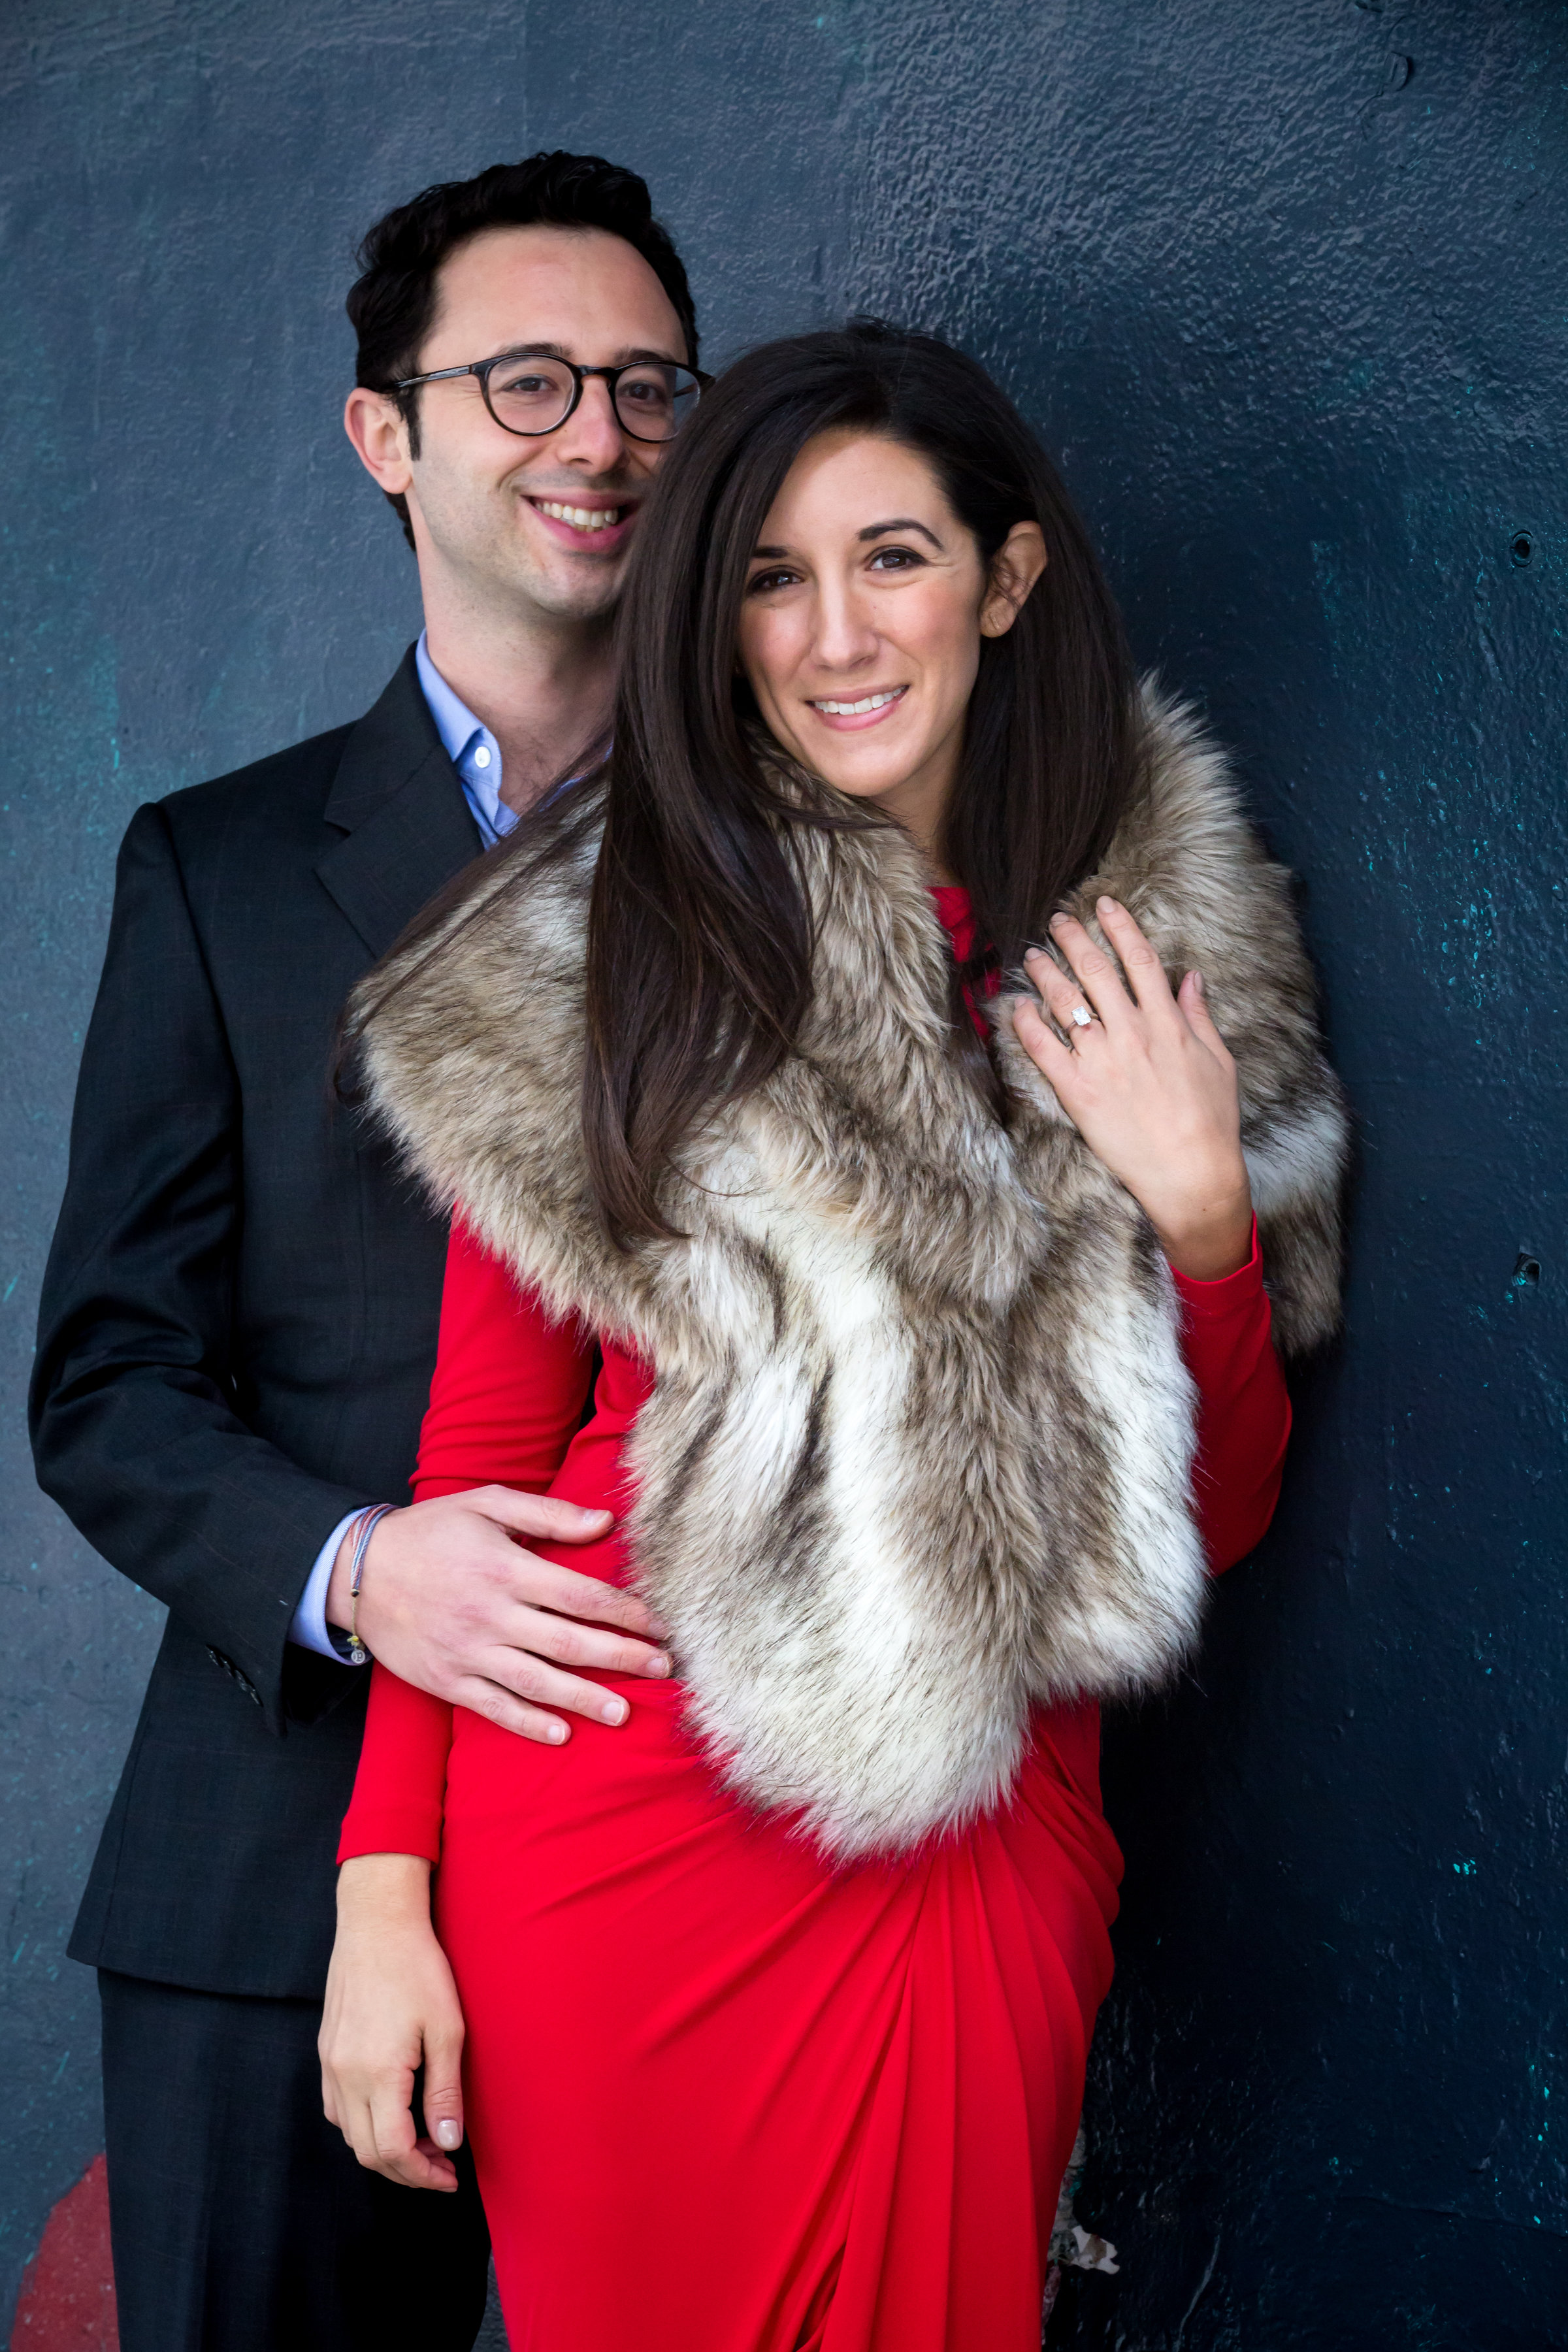 engagement-shoot-meat-packing-district-nyc-116.jpg